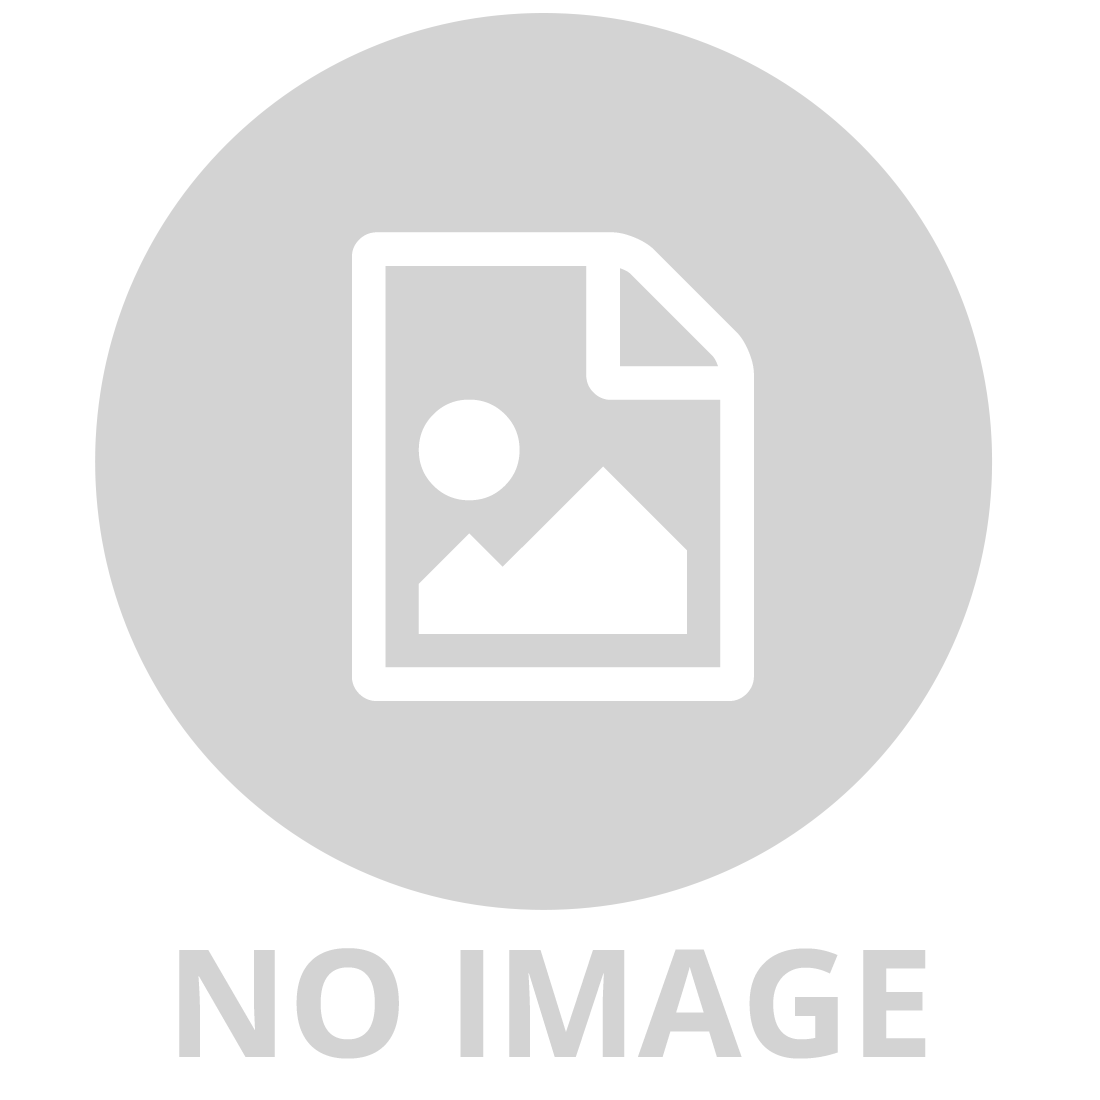 RAVENSBURGER JIGSAW PUZZLE LARGE FORMAT 750PC PUZZLER'S PLACE